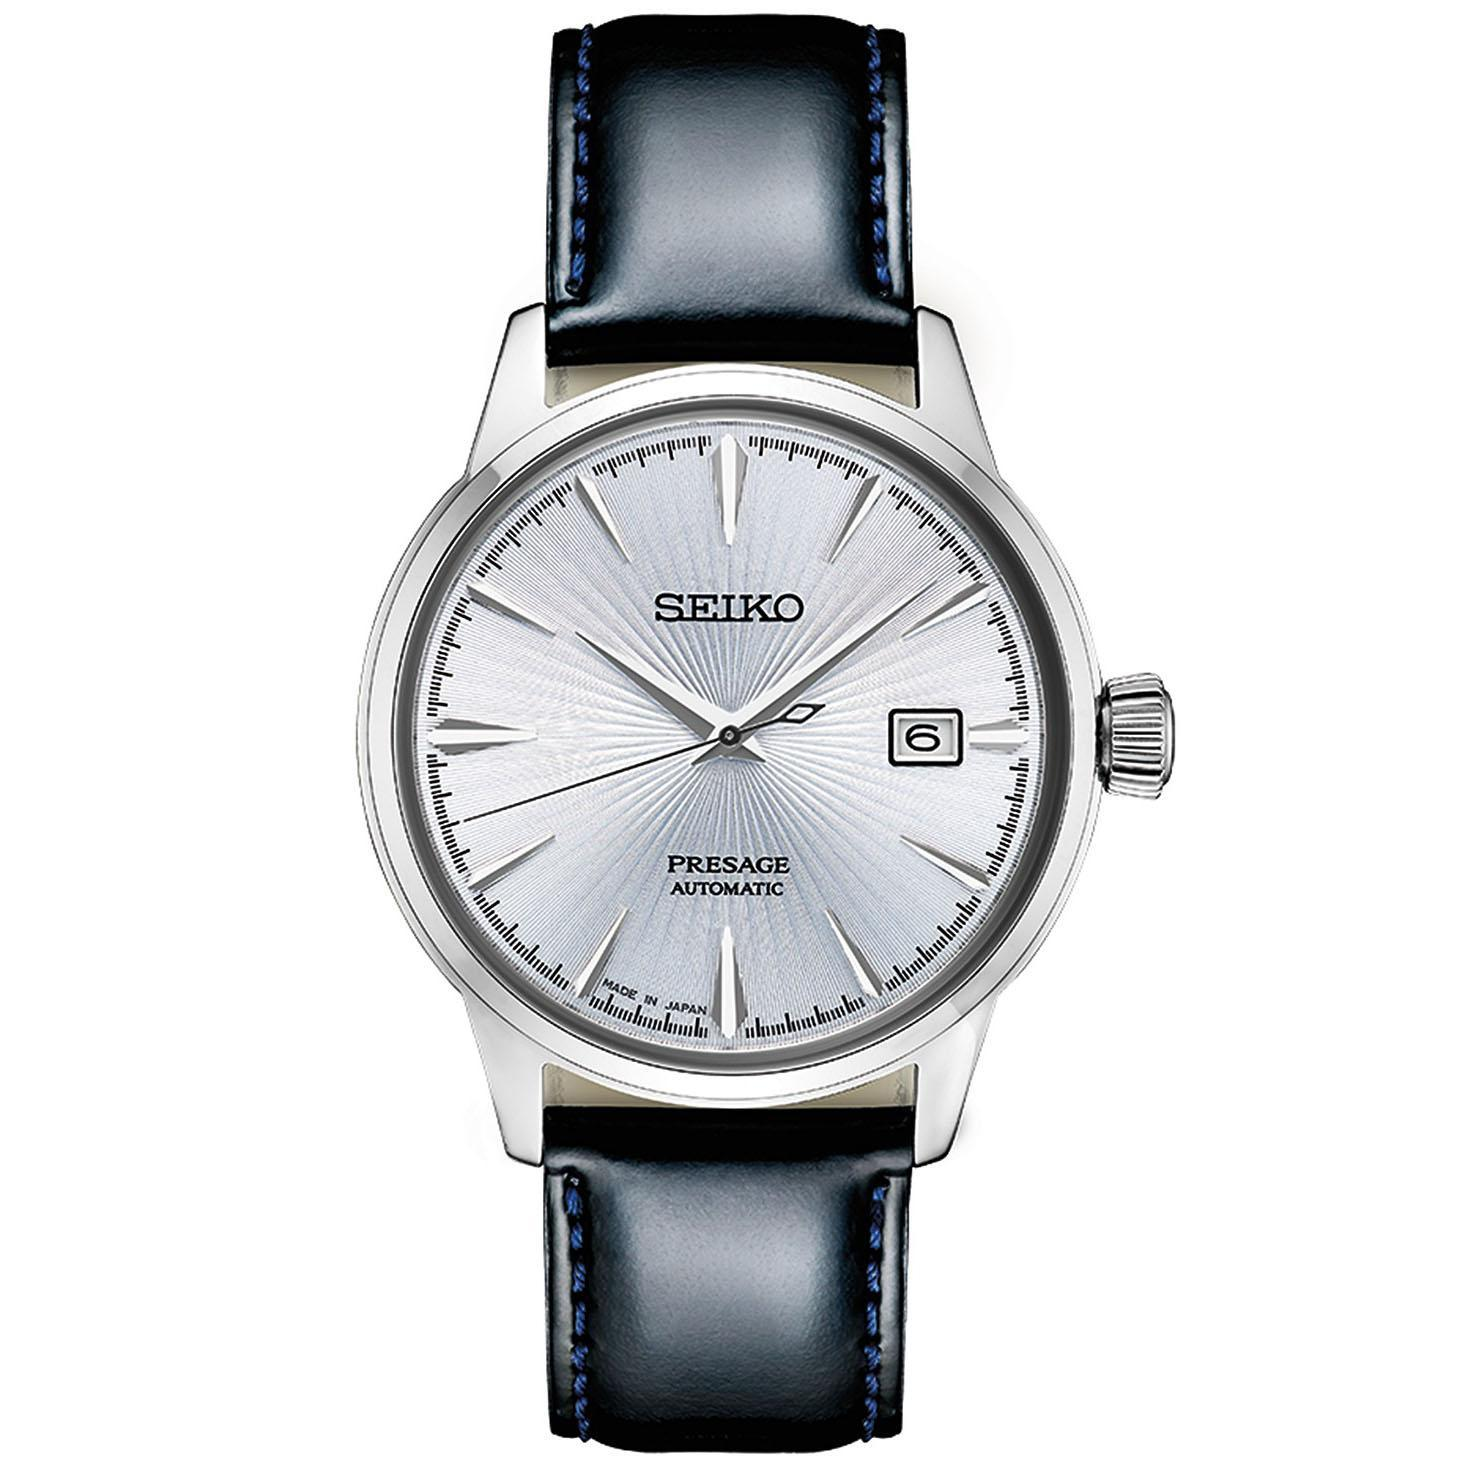 Seiko Mens Presage Automatic Watch with Black Leather Strap